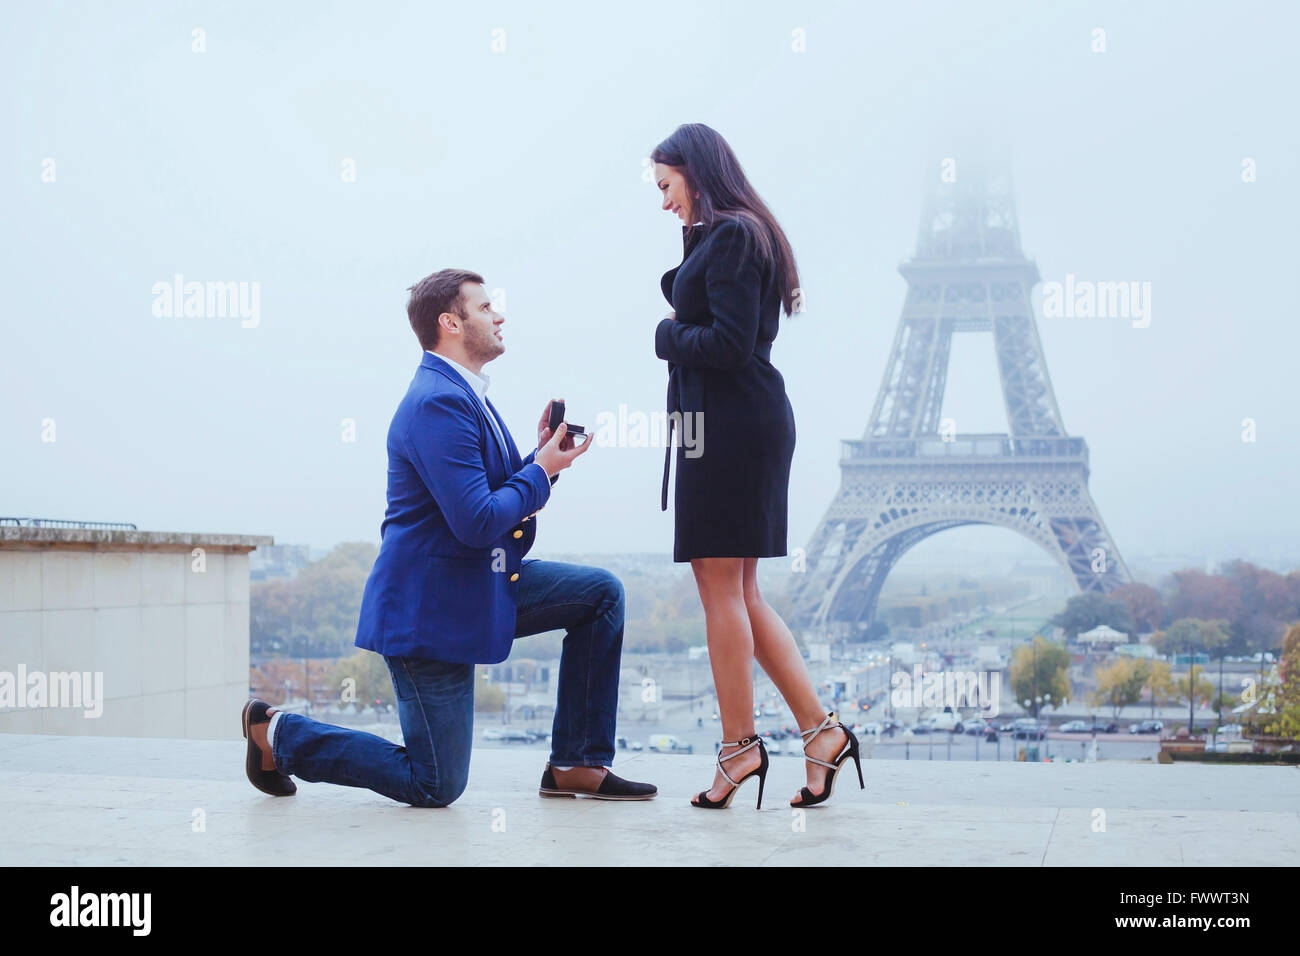 marry me, proposal in Paris near Eiffel Tower - Stock Image